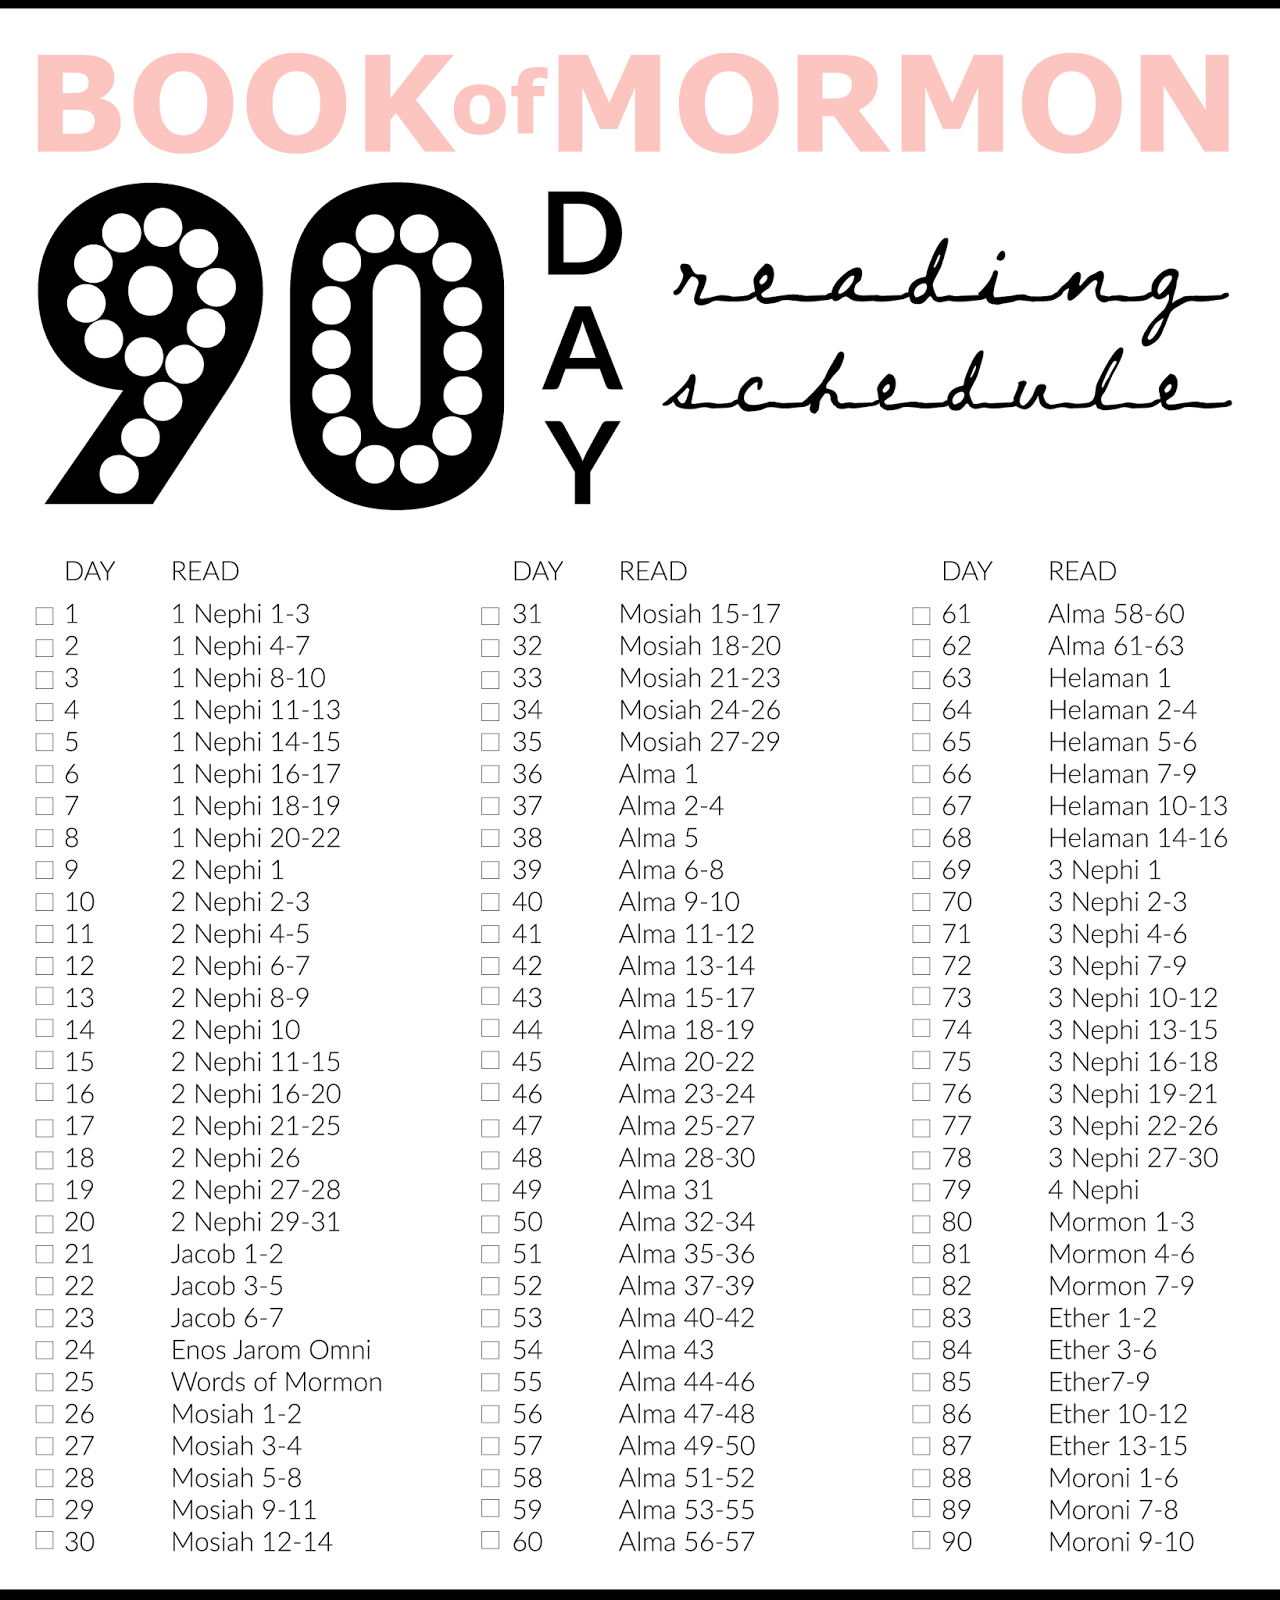 Miss audrey sue blog printable book of mormon days reading chart also rh pinterest